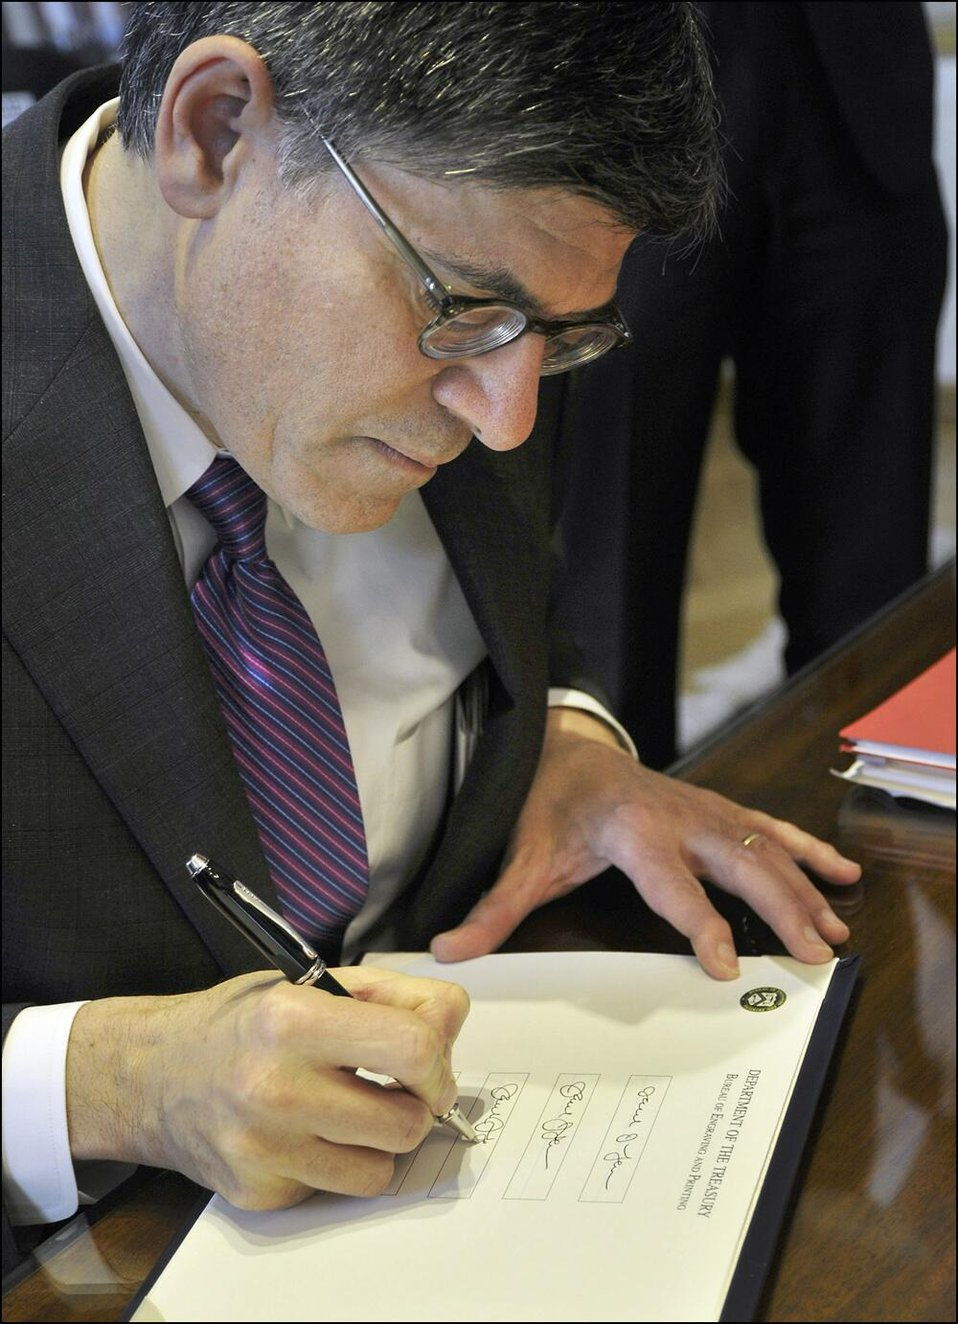 Secretary Lew provides his signature for printing on U.S. currency